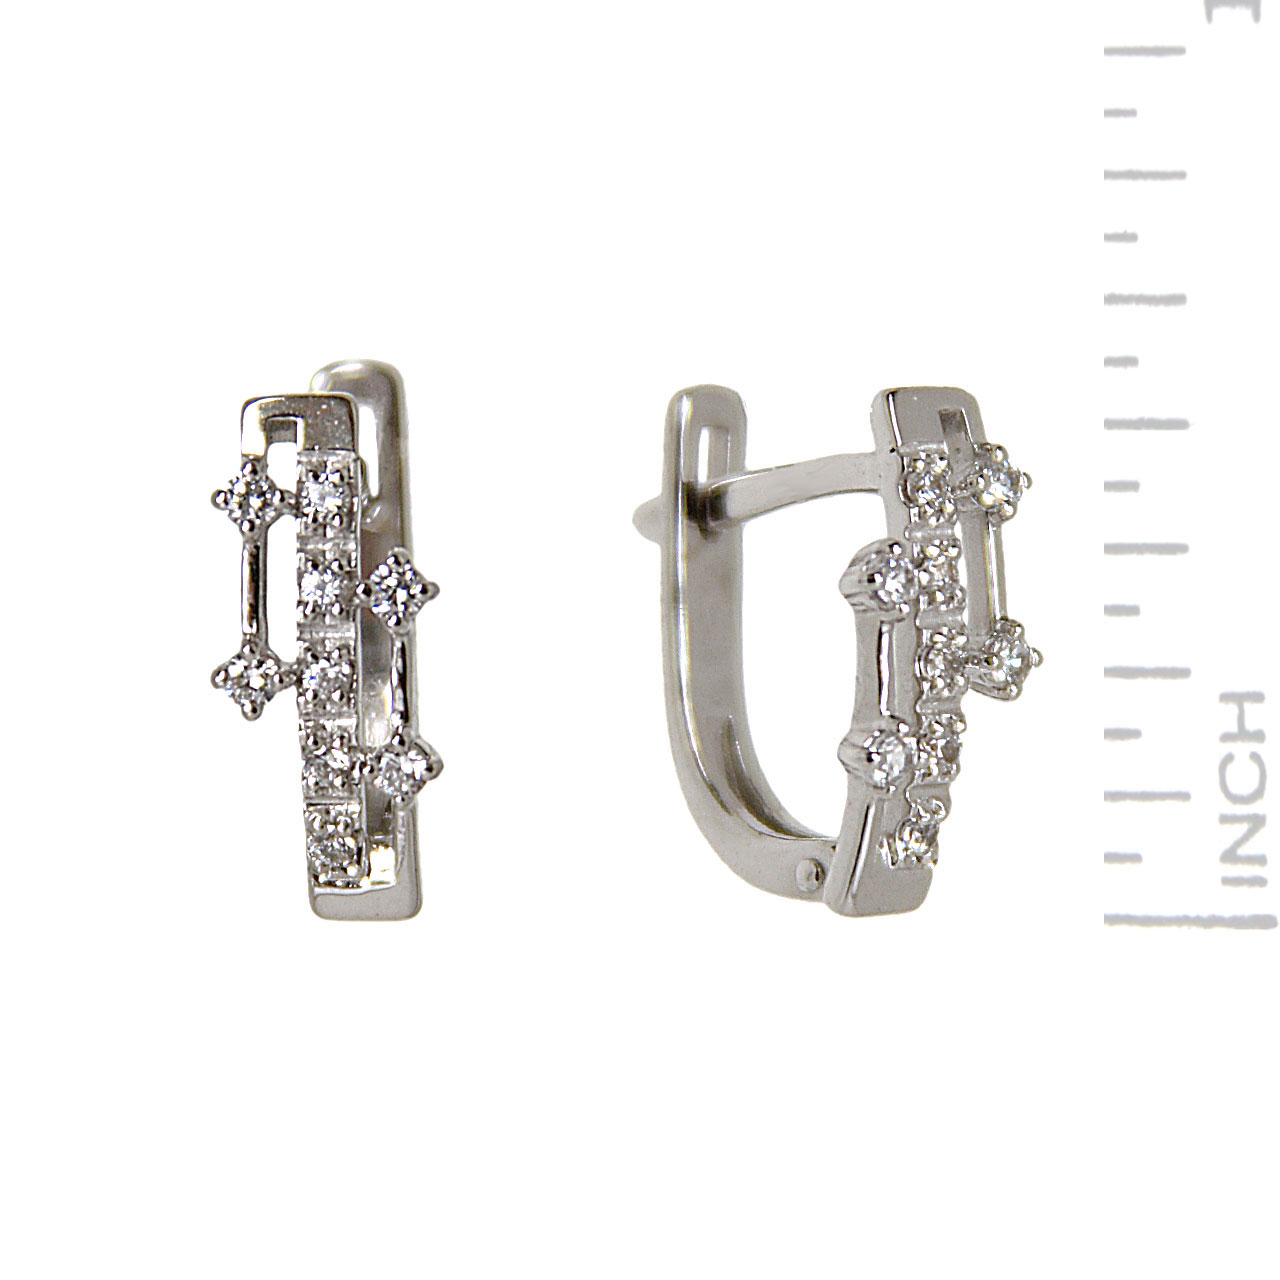 Futuristic Design White Gold Earrings